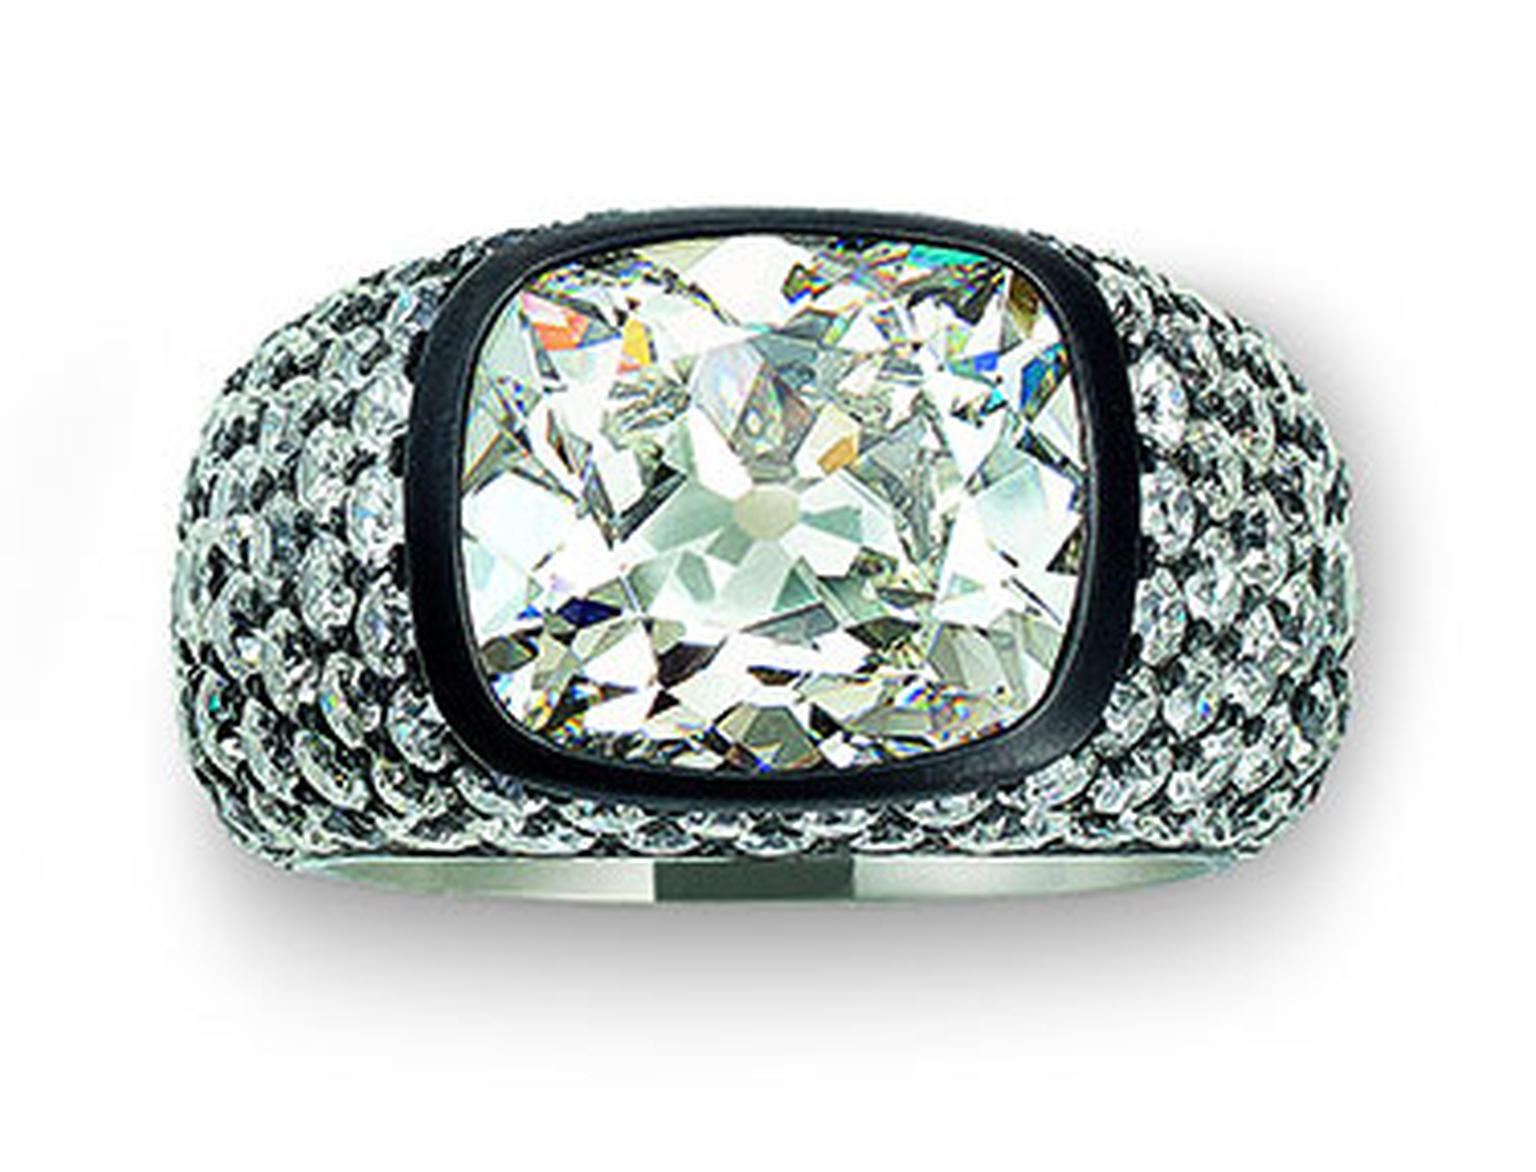 Hemmerle-ring-black-finished-silver-white-gold-diamond-cts-old-cut-diamonds-0119.jpg